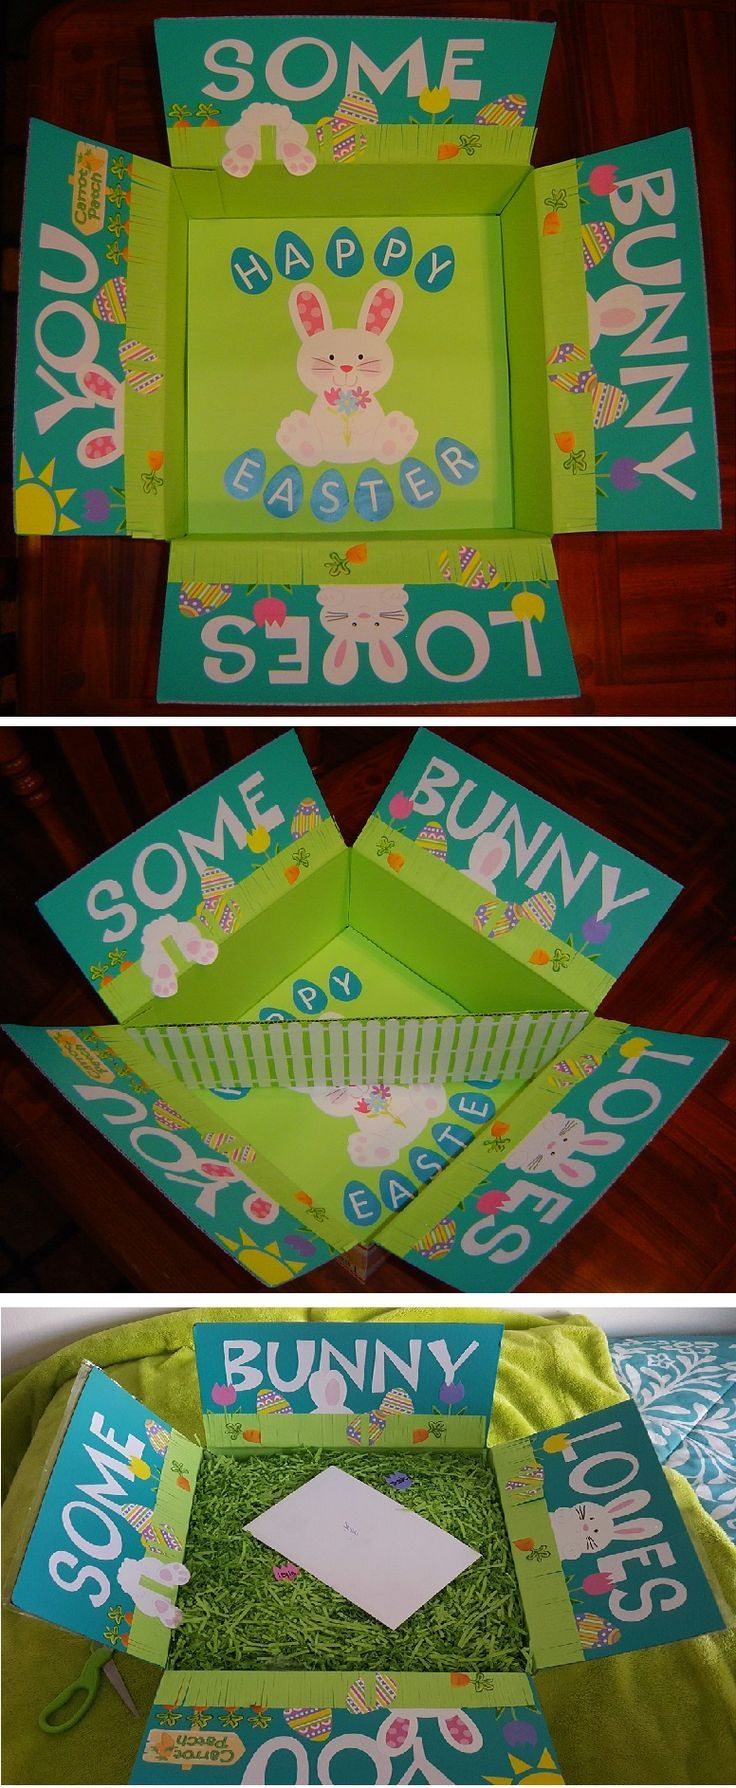 Some bunny loves you easter care package with a white picket some bunny loves you easter care package with a white picket fence divider filled half the box for my daughter and filled the other half for her college negle Image collections